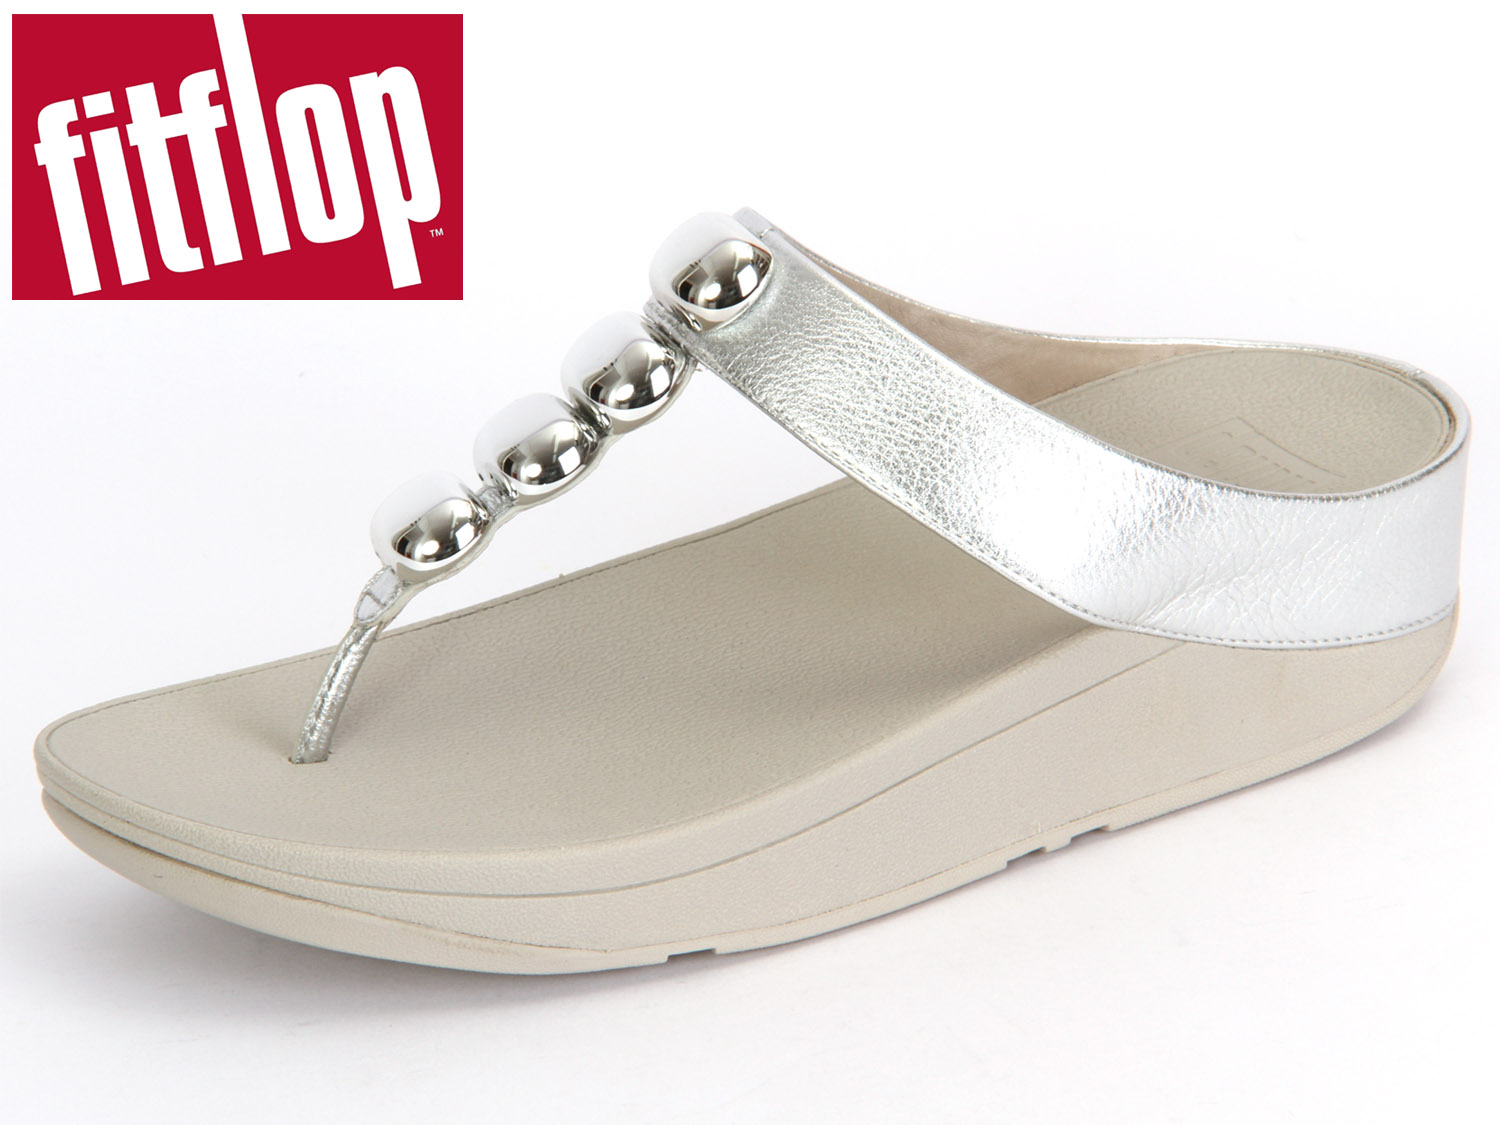 competitive price 0a869 20ee2 fitflop Rola E77-011 silver